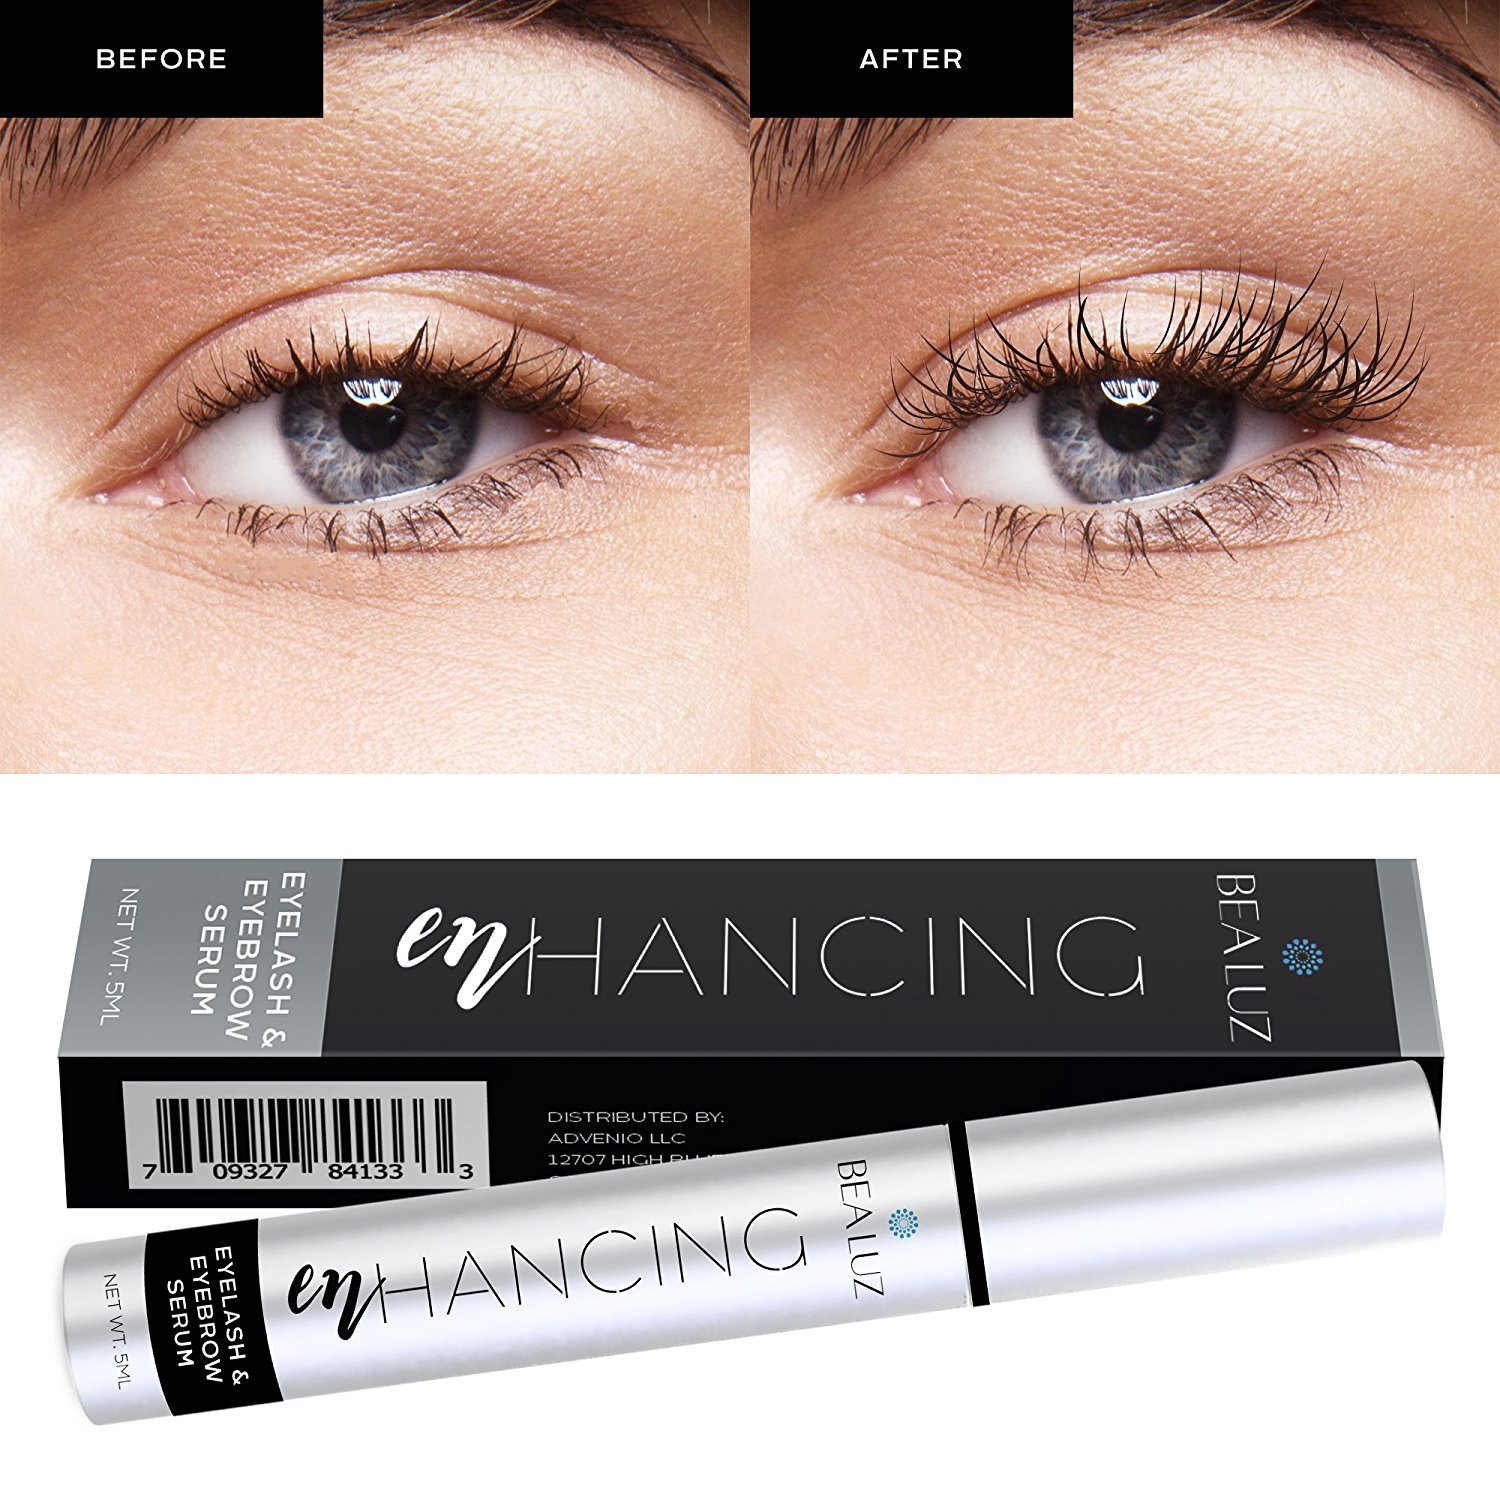 Amazon.com: Advanced Eyelash Growth Serum Eyebrow and Eyelash Enhancer 5ML 3 Month Supply: Beauty